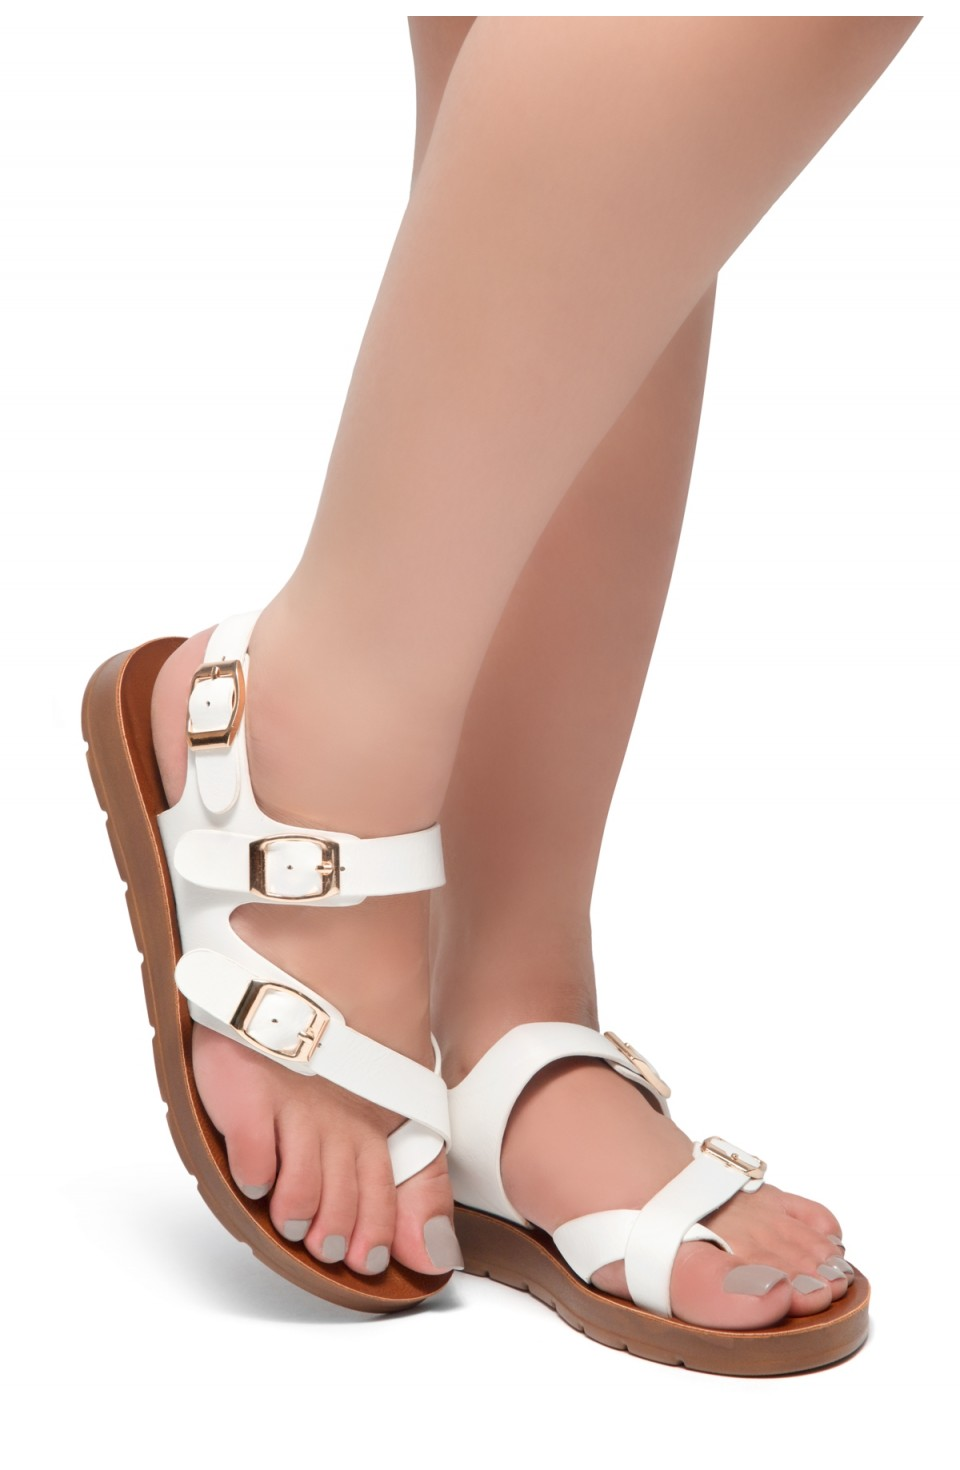 Shoe Land Women's Manmade NOLITA(SL)- Flat Sandal with buckle accents(1831/White)